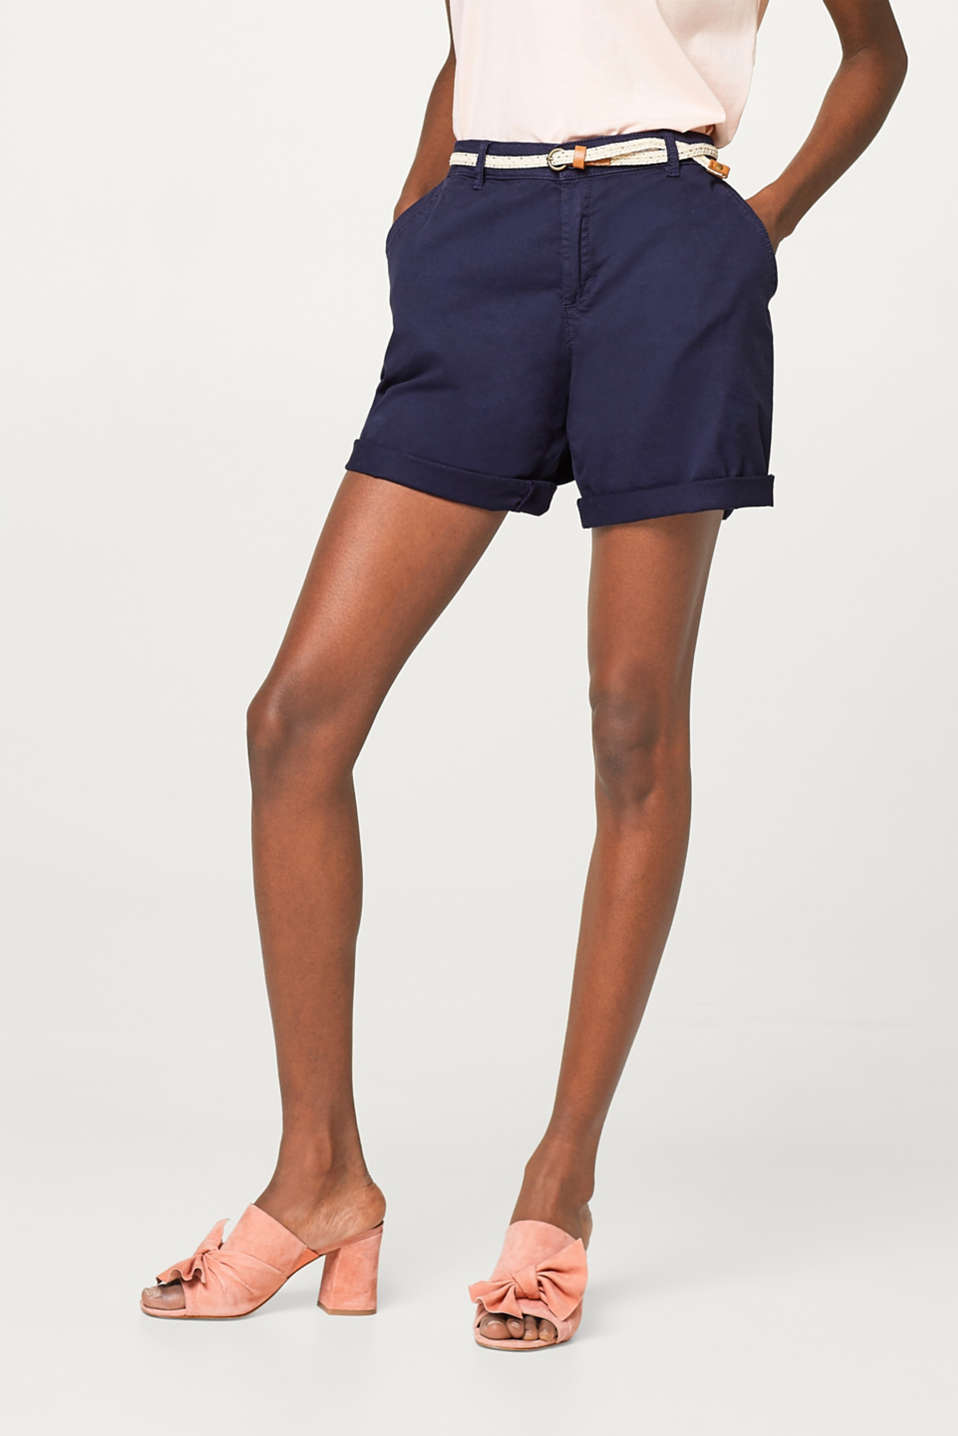 Esprit - Garment-washed stretch cotton shorts with a belt